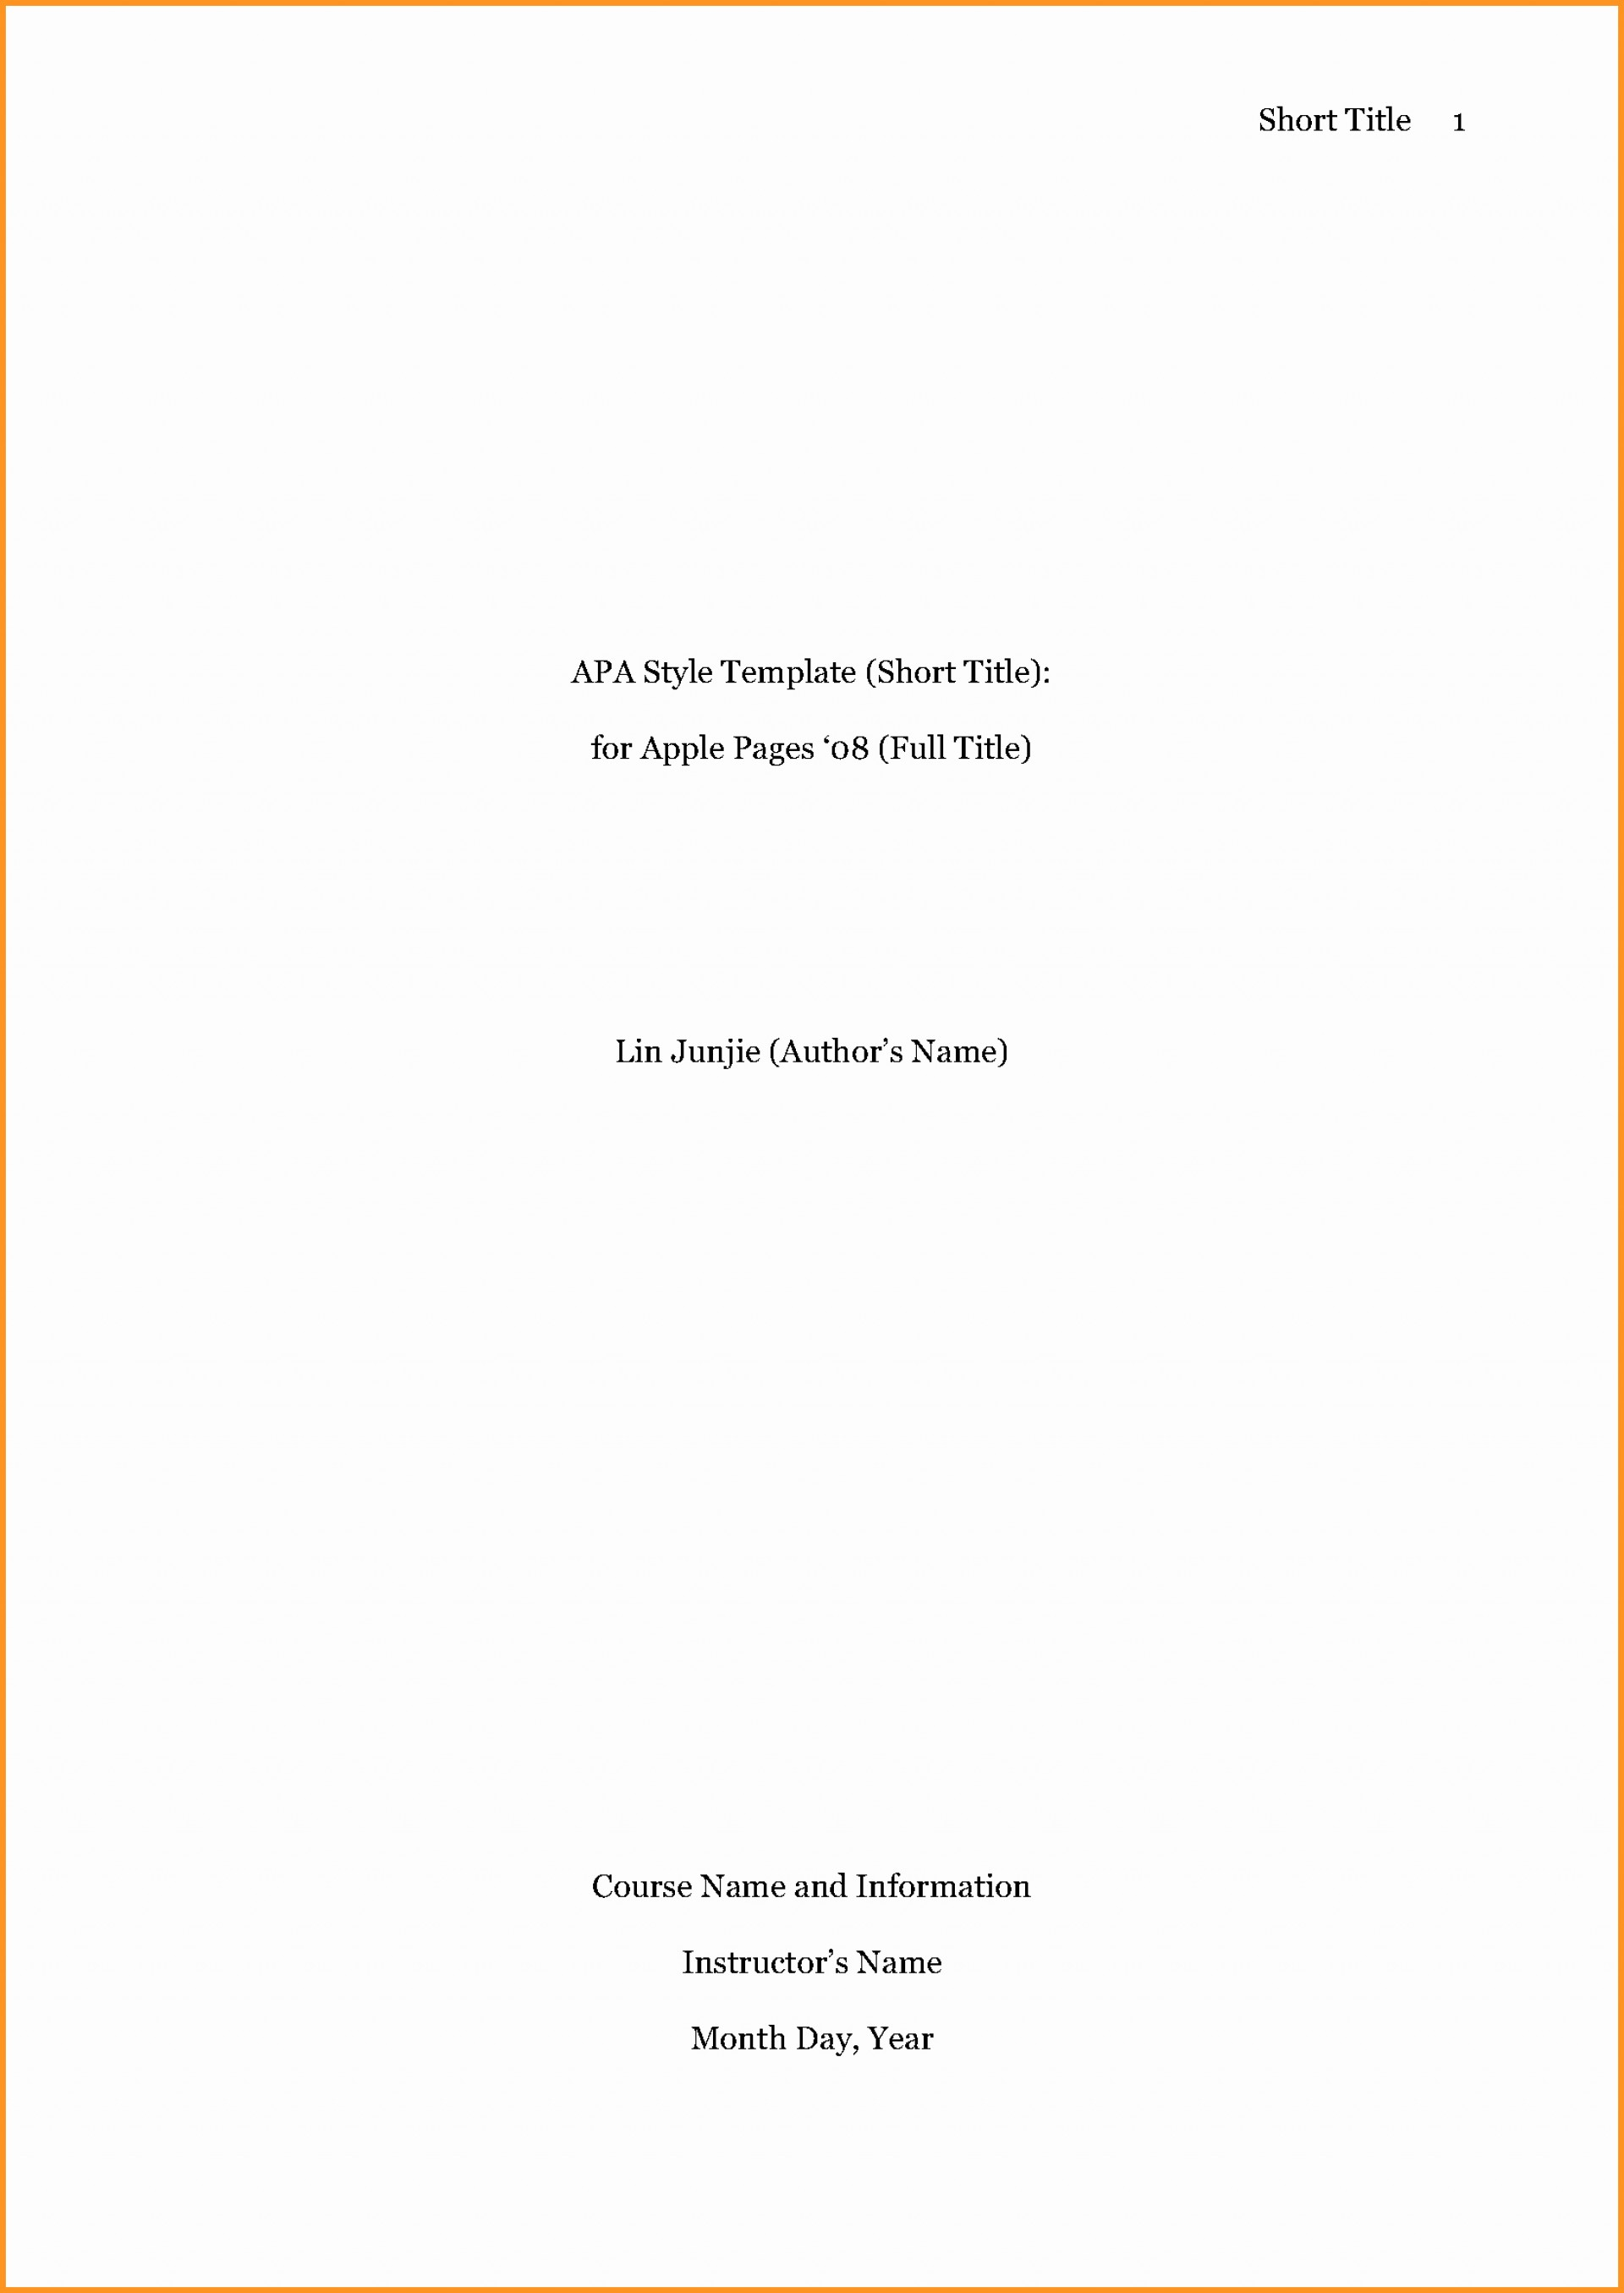 010 Research Paper Apamat Cover Page Fresh Sample Titles Bamboodownunder Of Template Rare For Apa How To Do A Format 1920